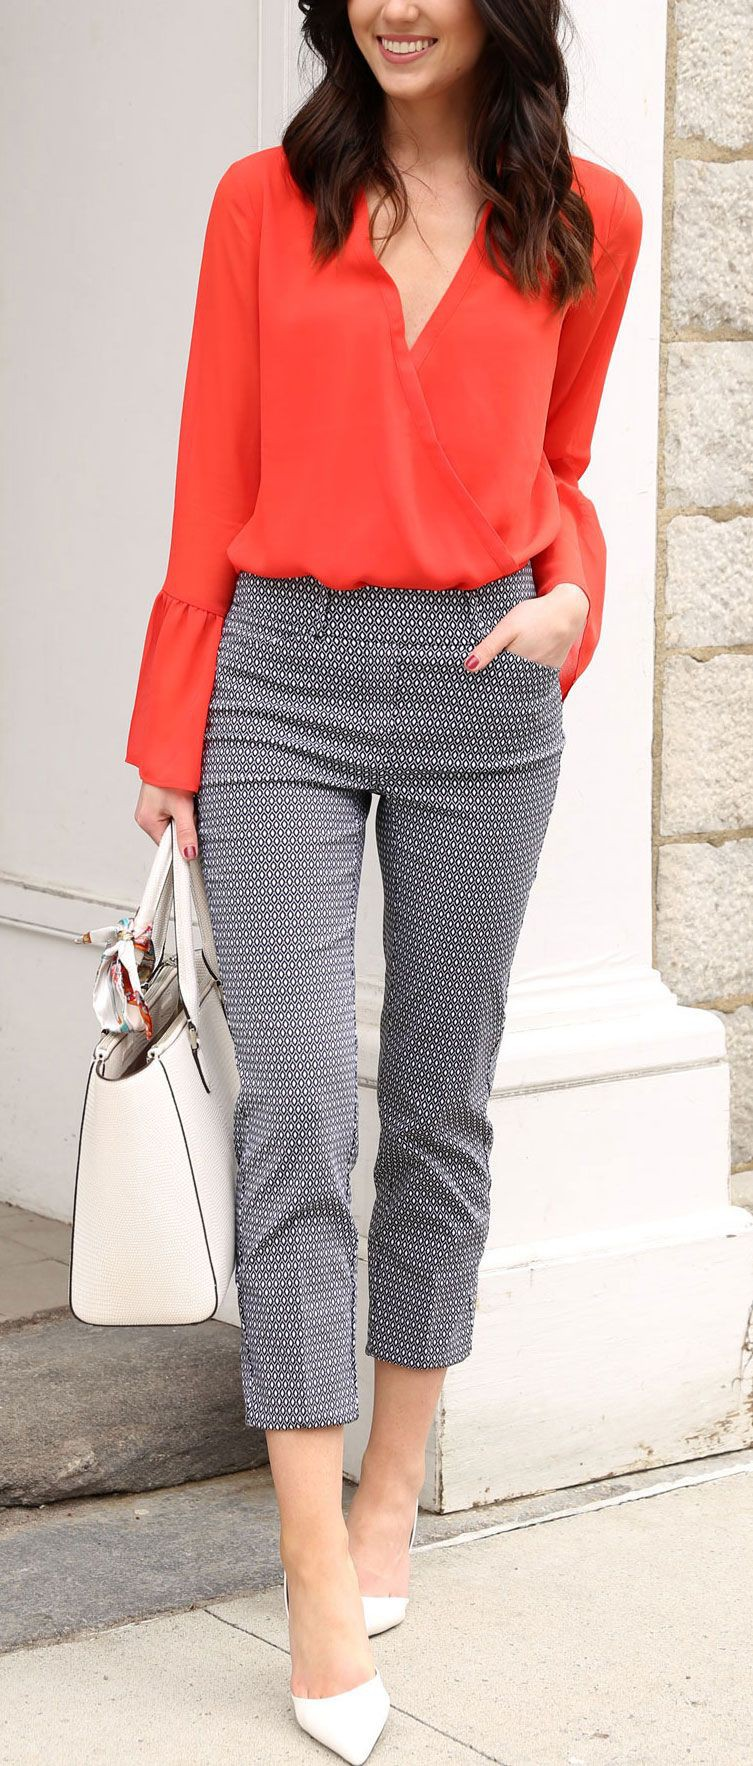 Just fantastic elegant casual outfit, Casual wear